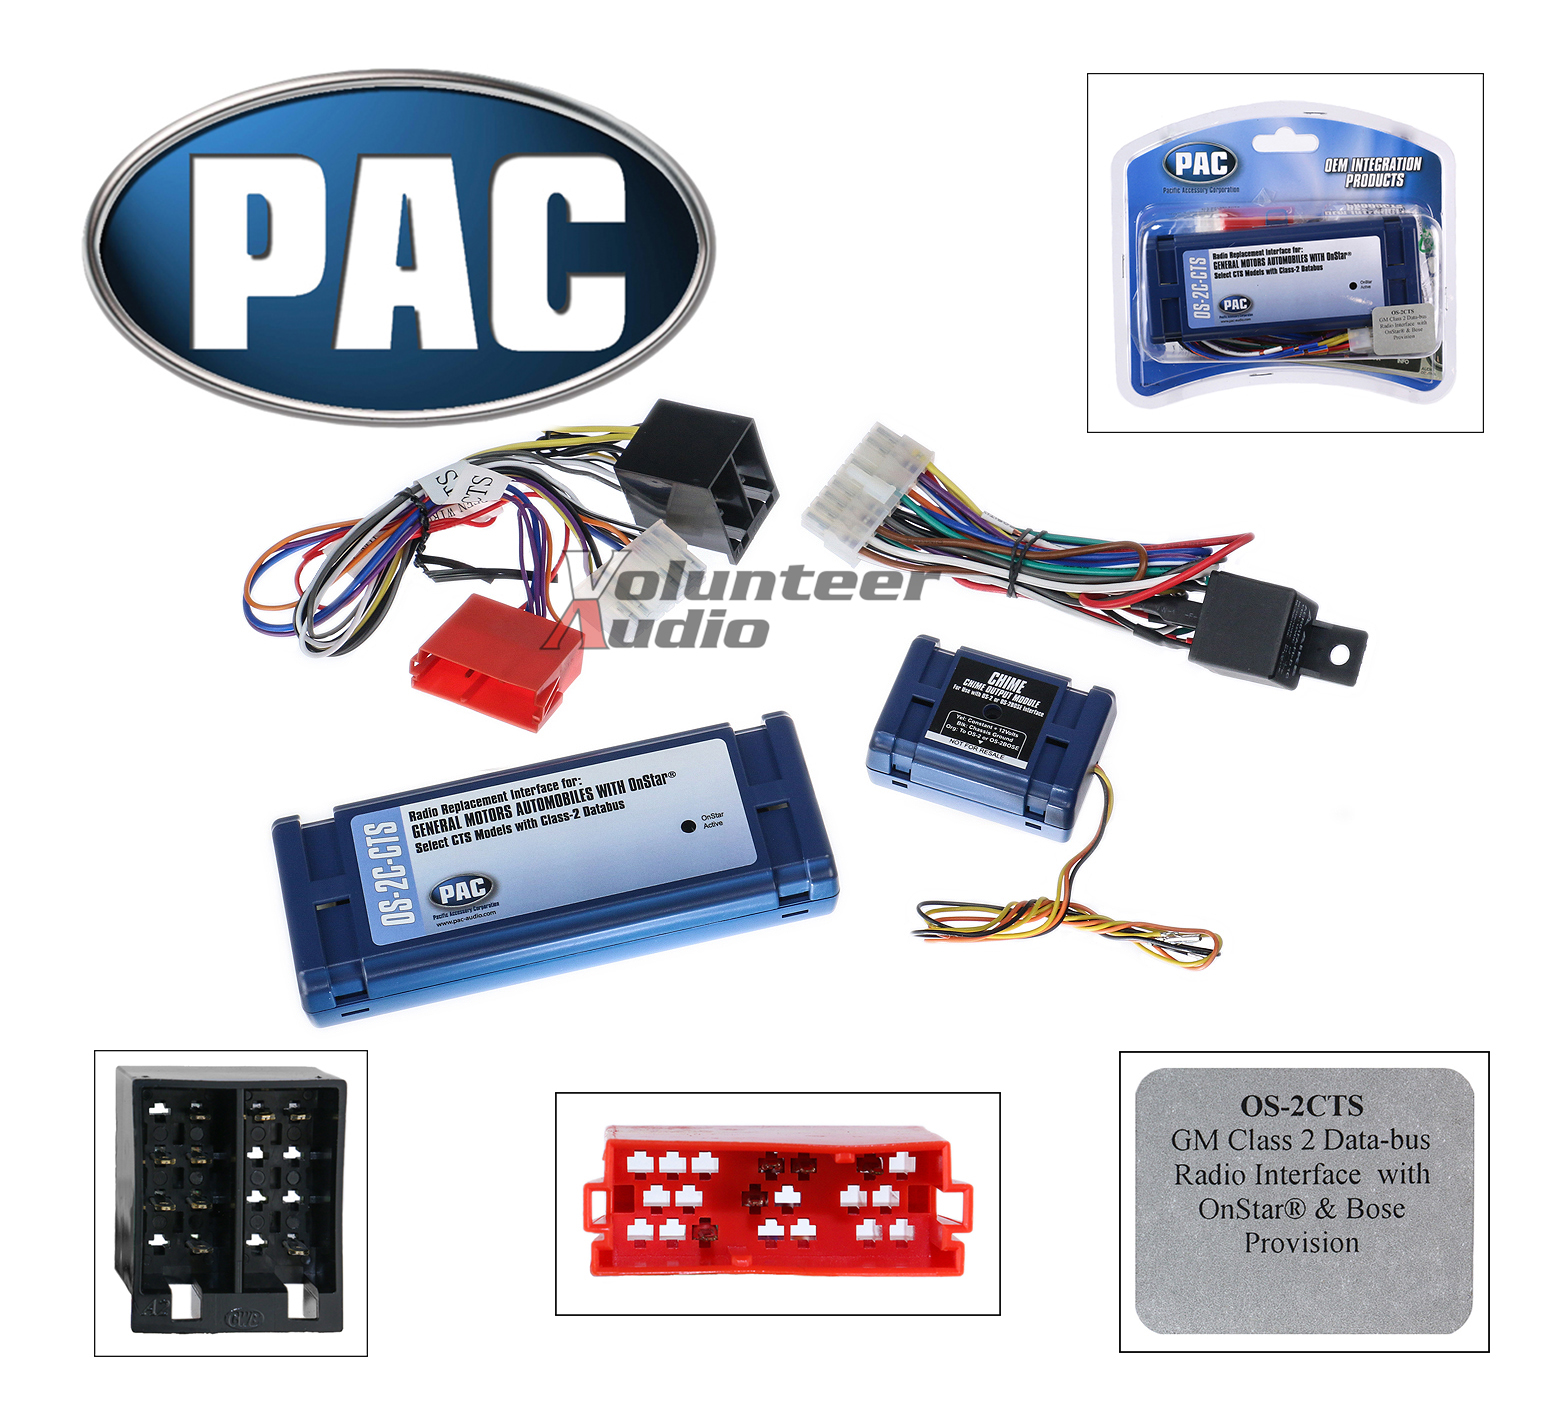 Pac Wiring Harness Wire Data Schema 350z Bose Diagram Non Os 2c Cts Onstar Radio Replacement Interface Rh Cafr Ebay Ca Adapter